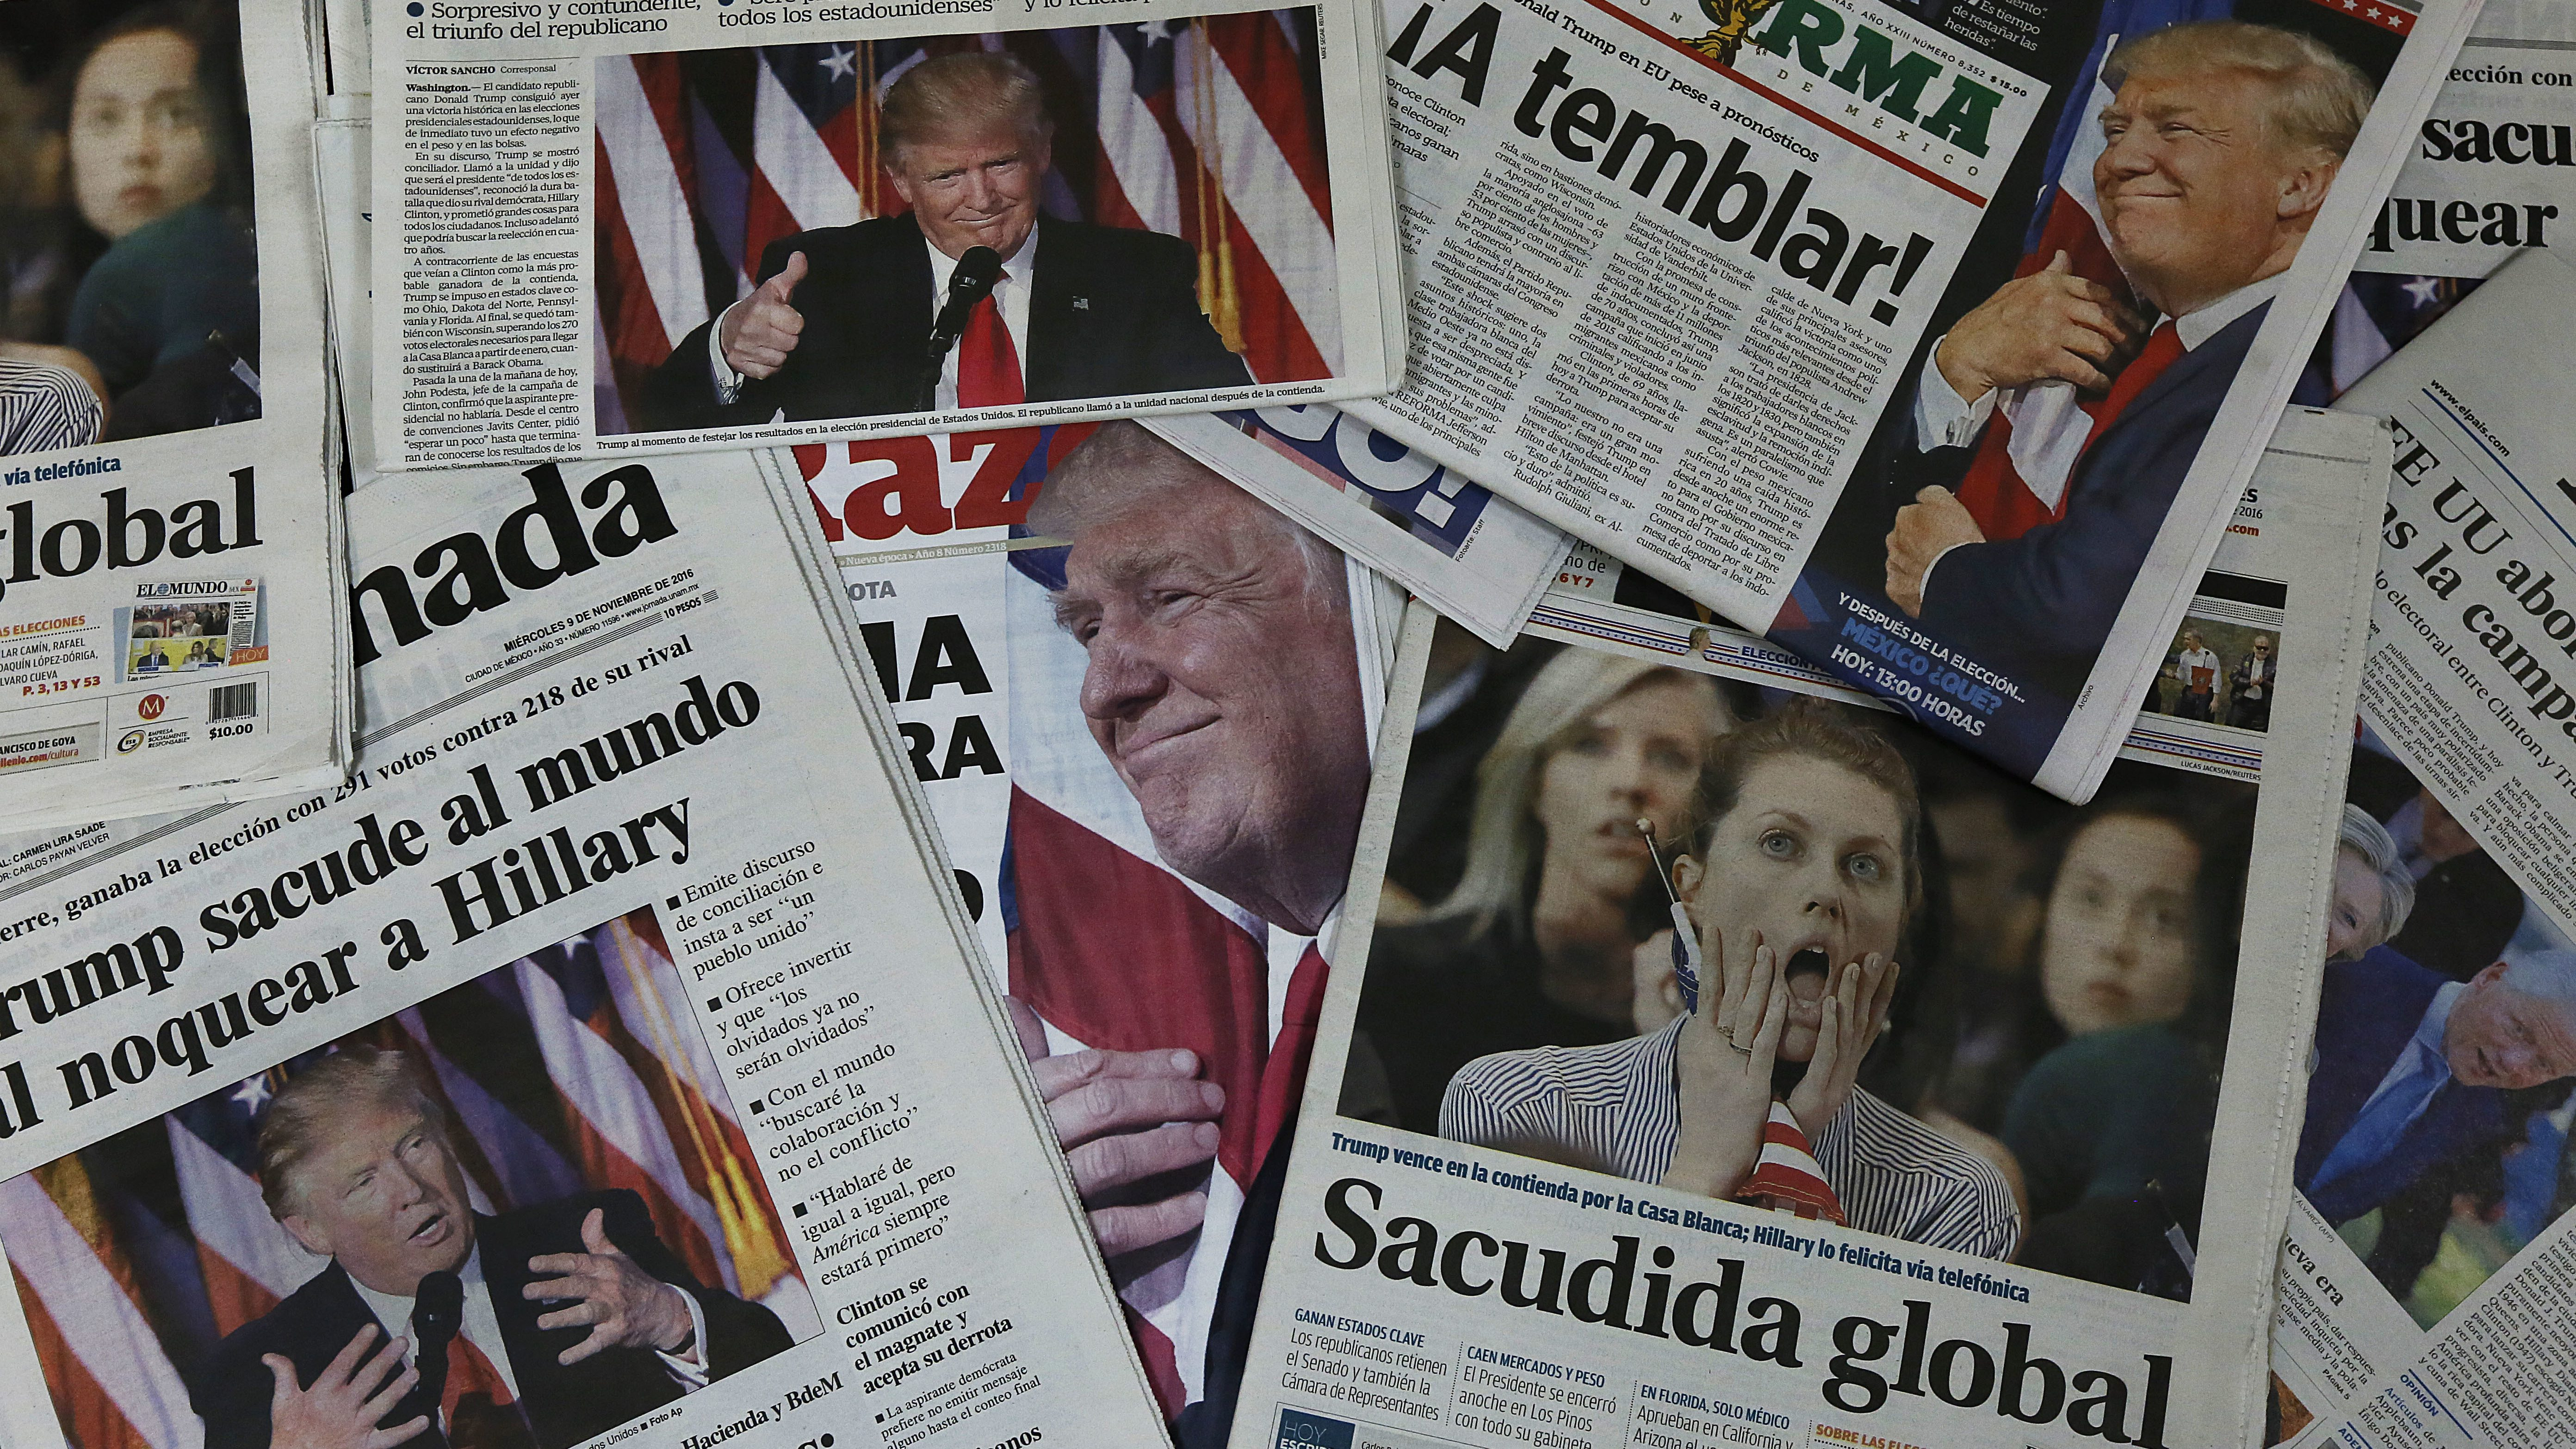 Mexican newspapers headline with Donald Trump's triumph over Hillary Clinton, in Mexico City, Wednesday, Nov. 9, 2016. President-elect Trump's victory ends eight years of Democratic dominance of the White House. Trump has pledged to usher in sweeping changes to U.S. foreign policy, including building a wall along the U.S.-Mexico border. (AP Photo/Marco Ugarte)